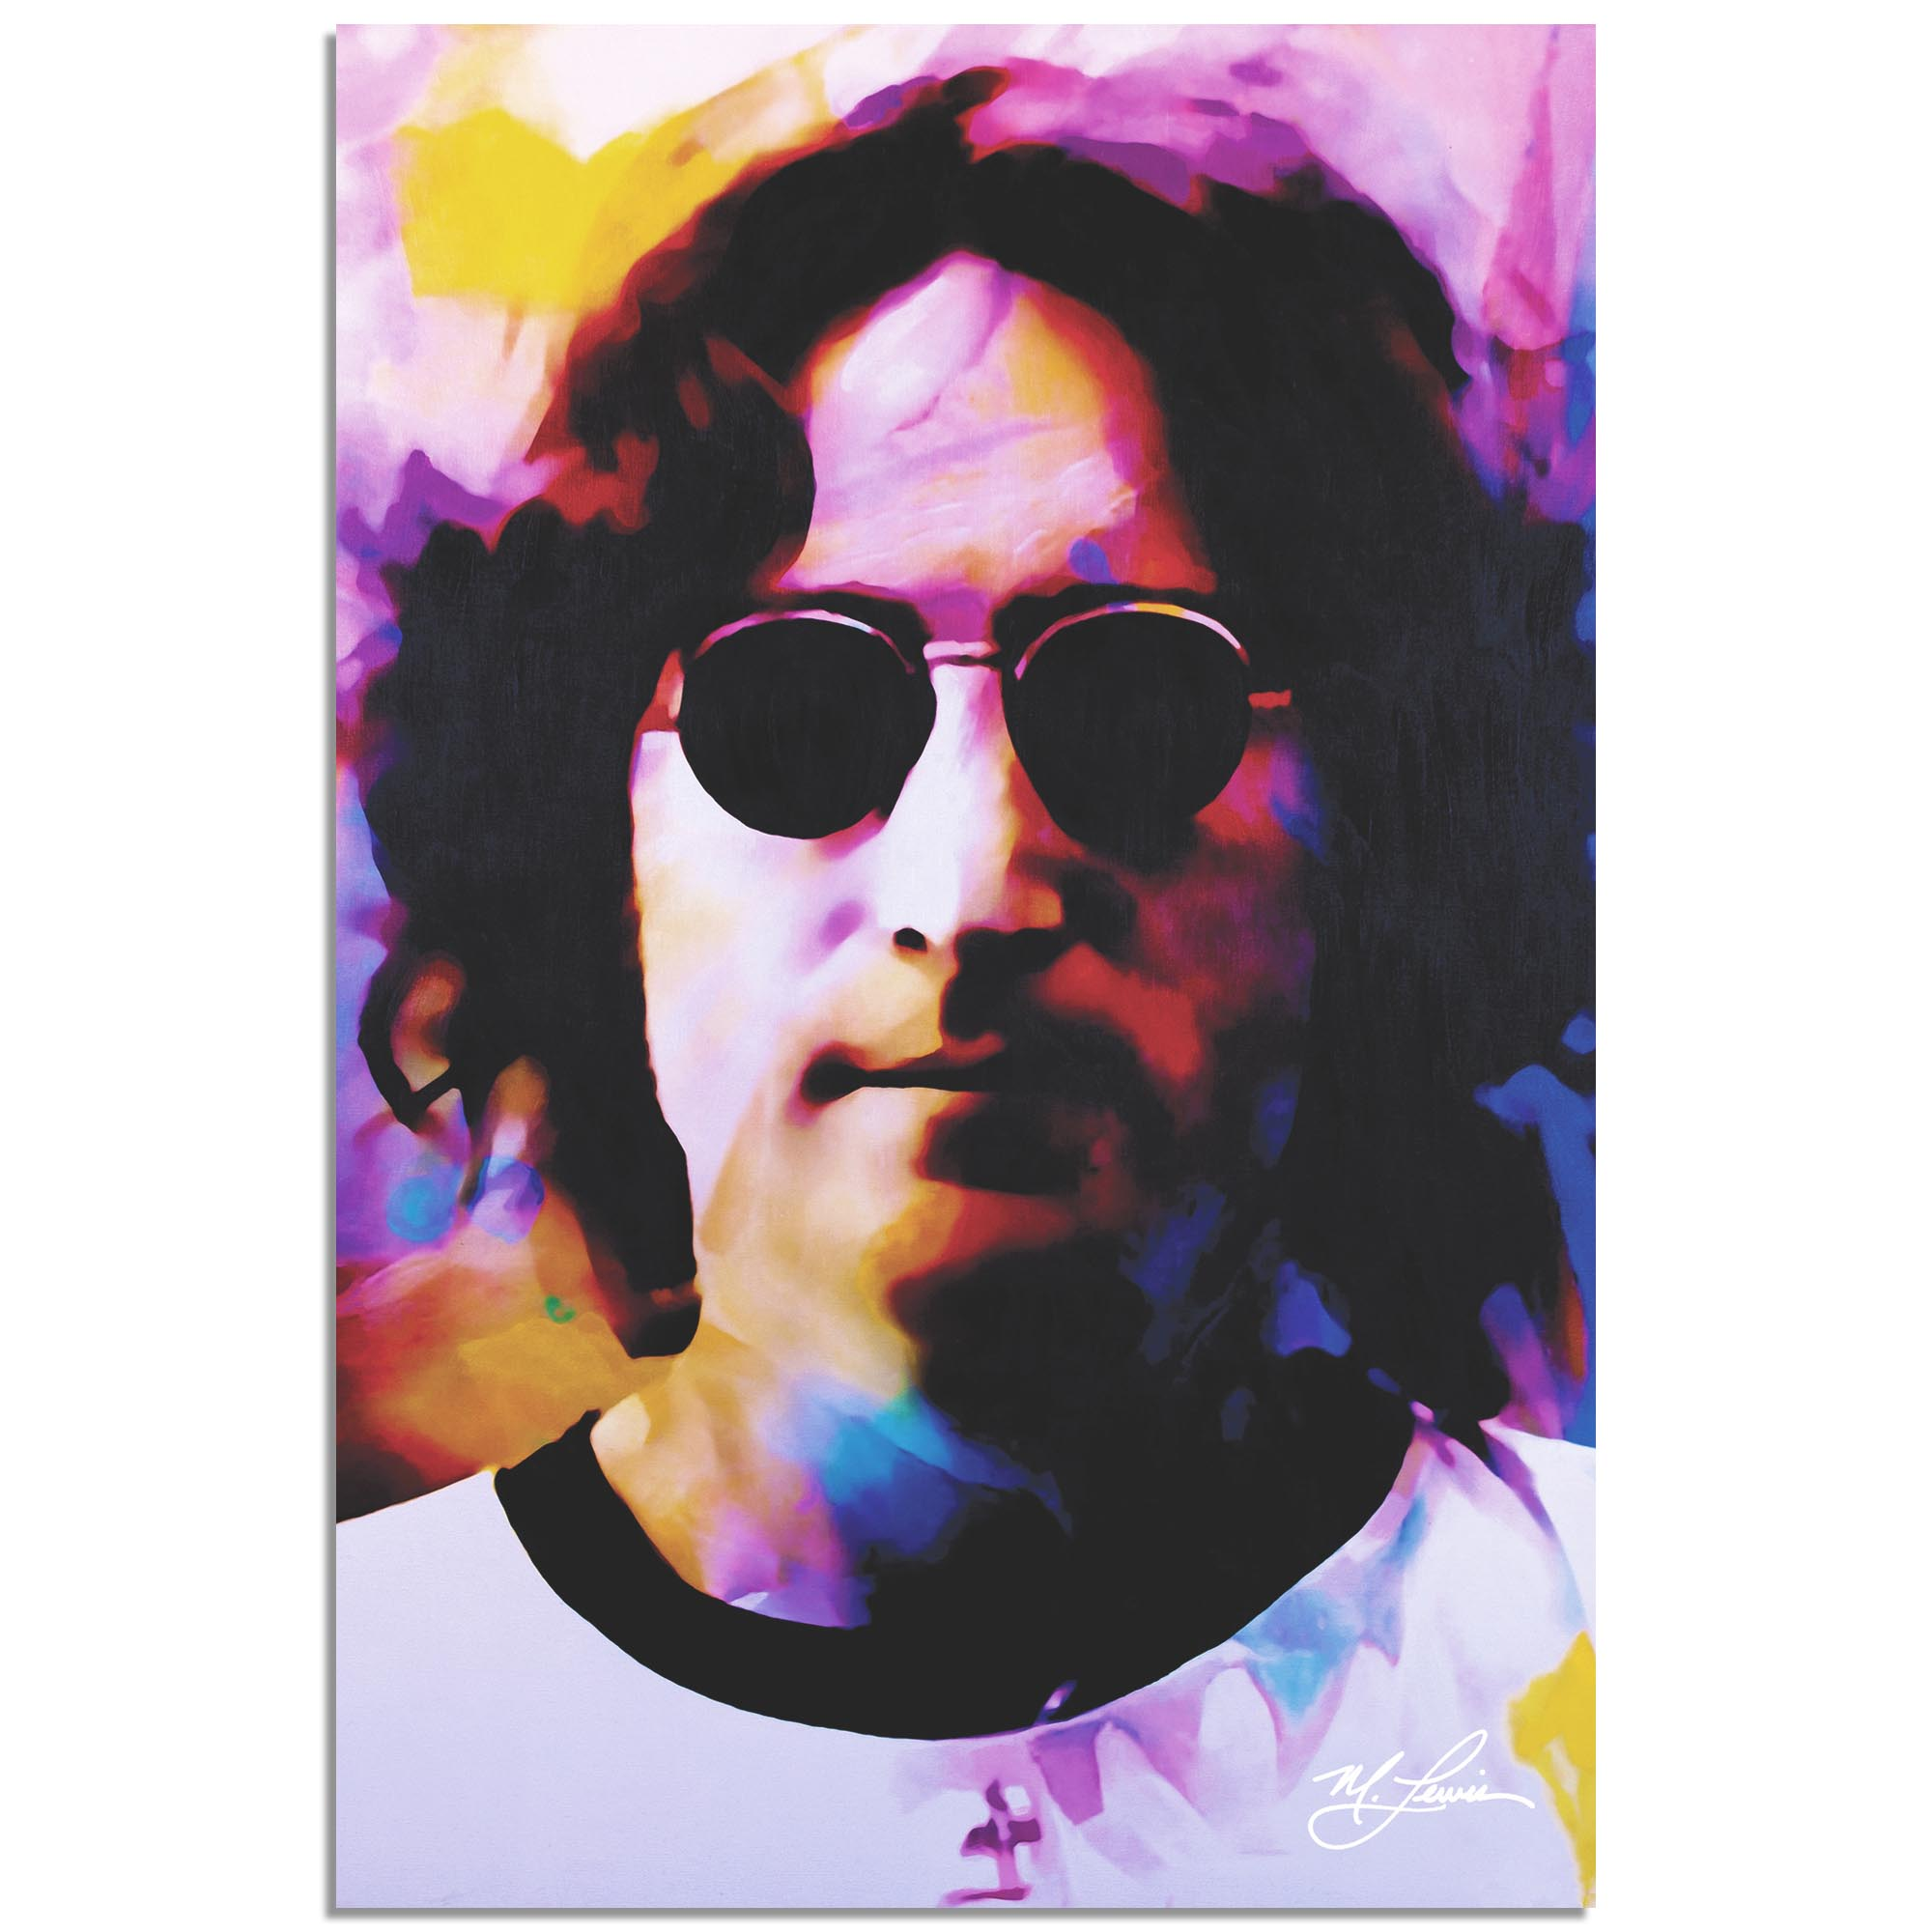 John Lennon Dance of Emotion by Mark Lewis - Celebrity Pop Art on Metal or Plexiglass